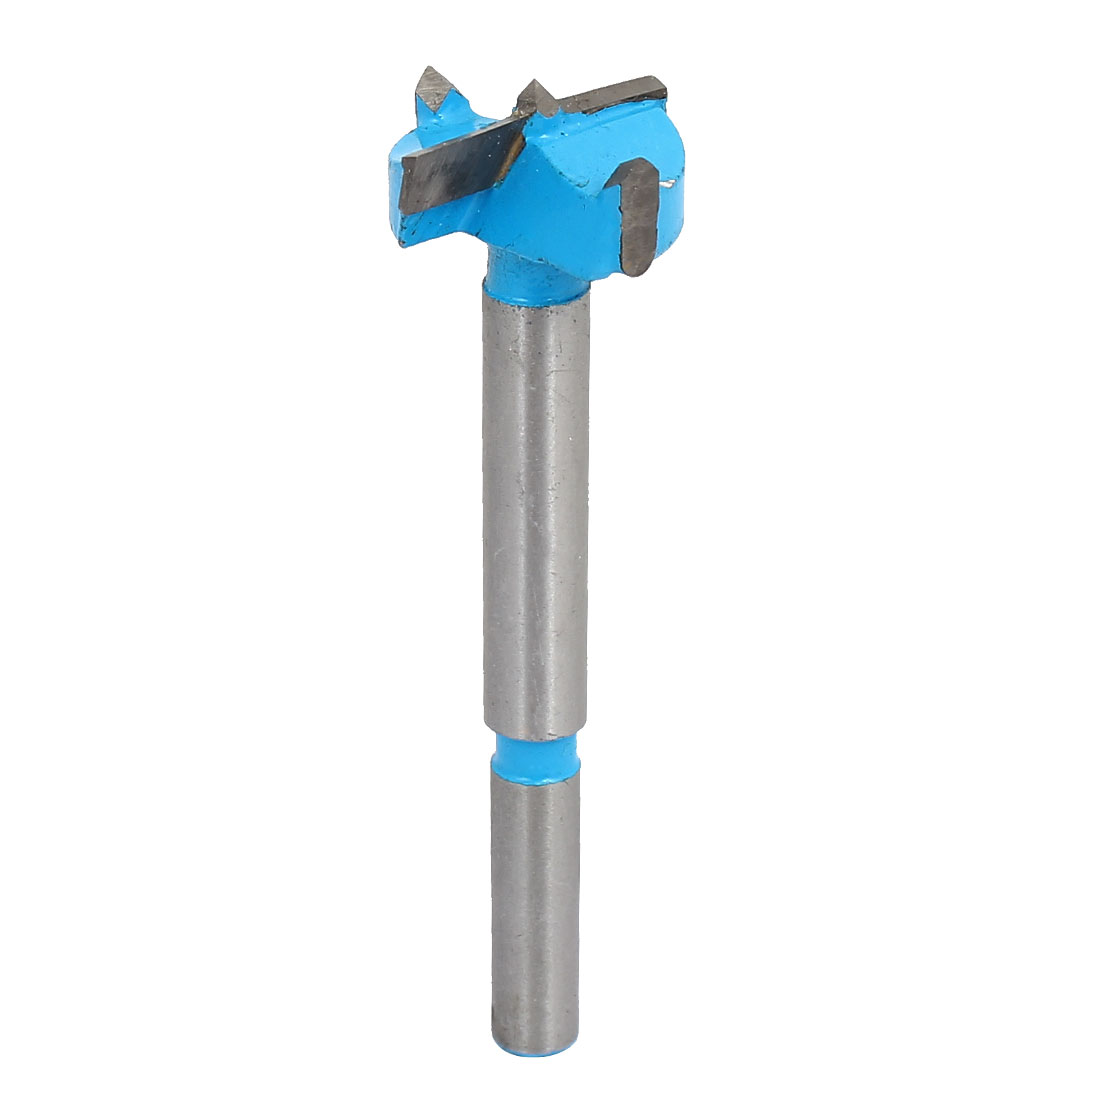 23mm Cutting Dia 7mm Round Shank Hinge Boring Drill Bit Wood Cuting Tool